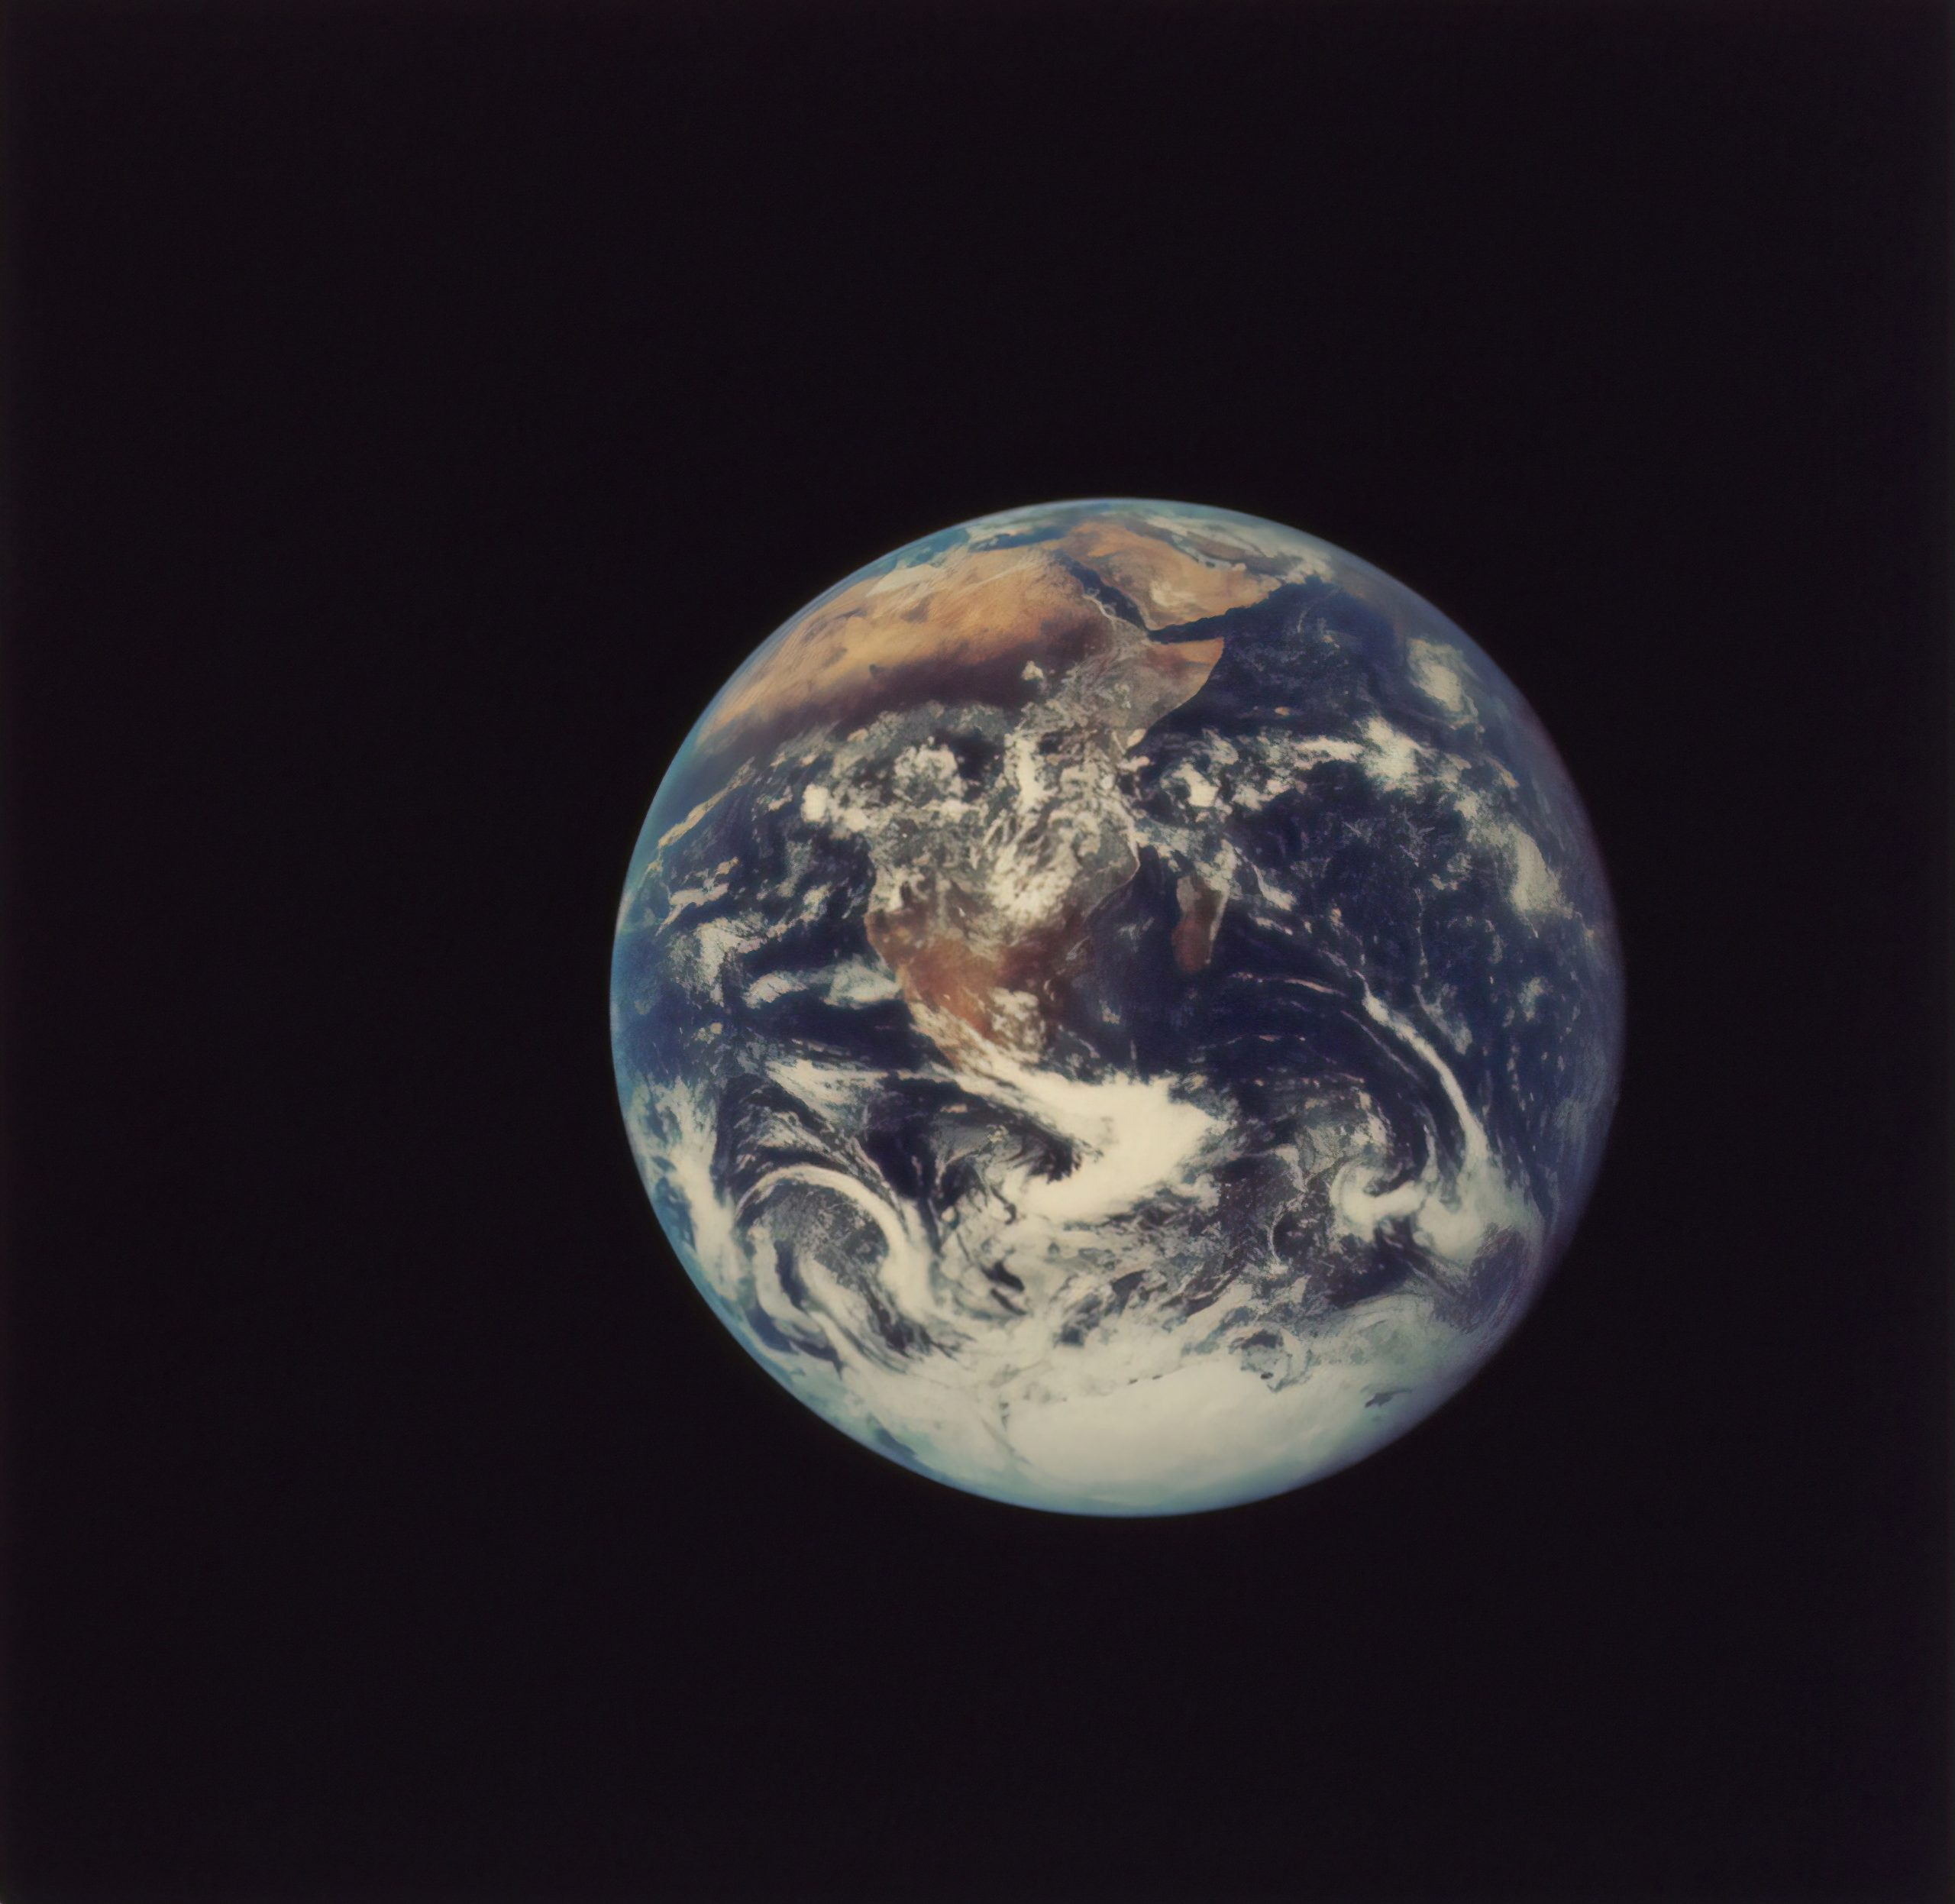 earth - Research News Sco